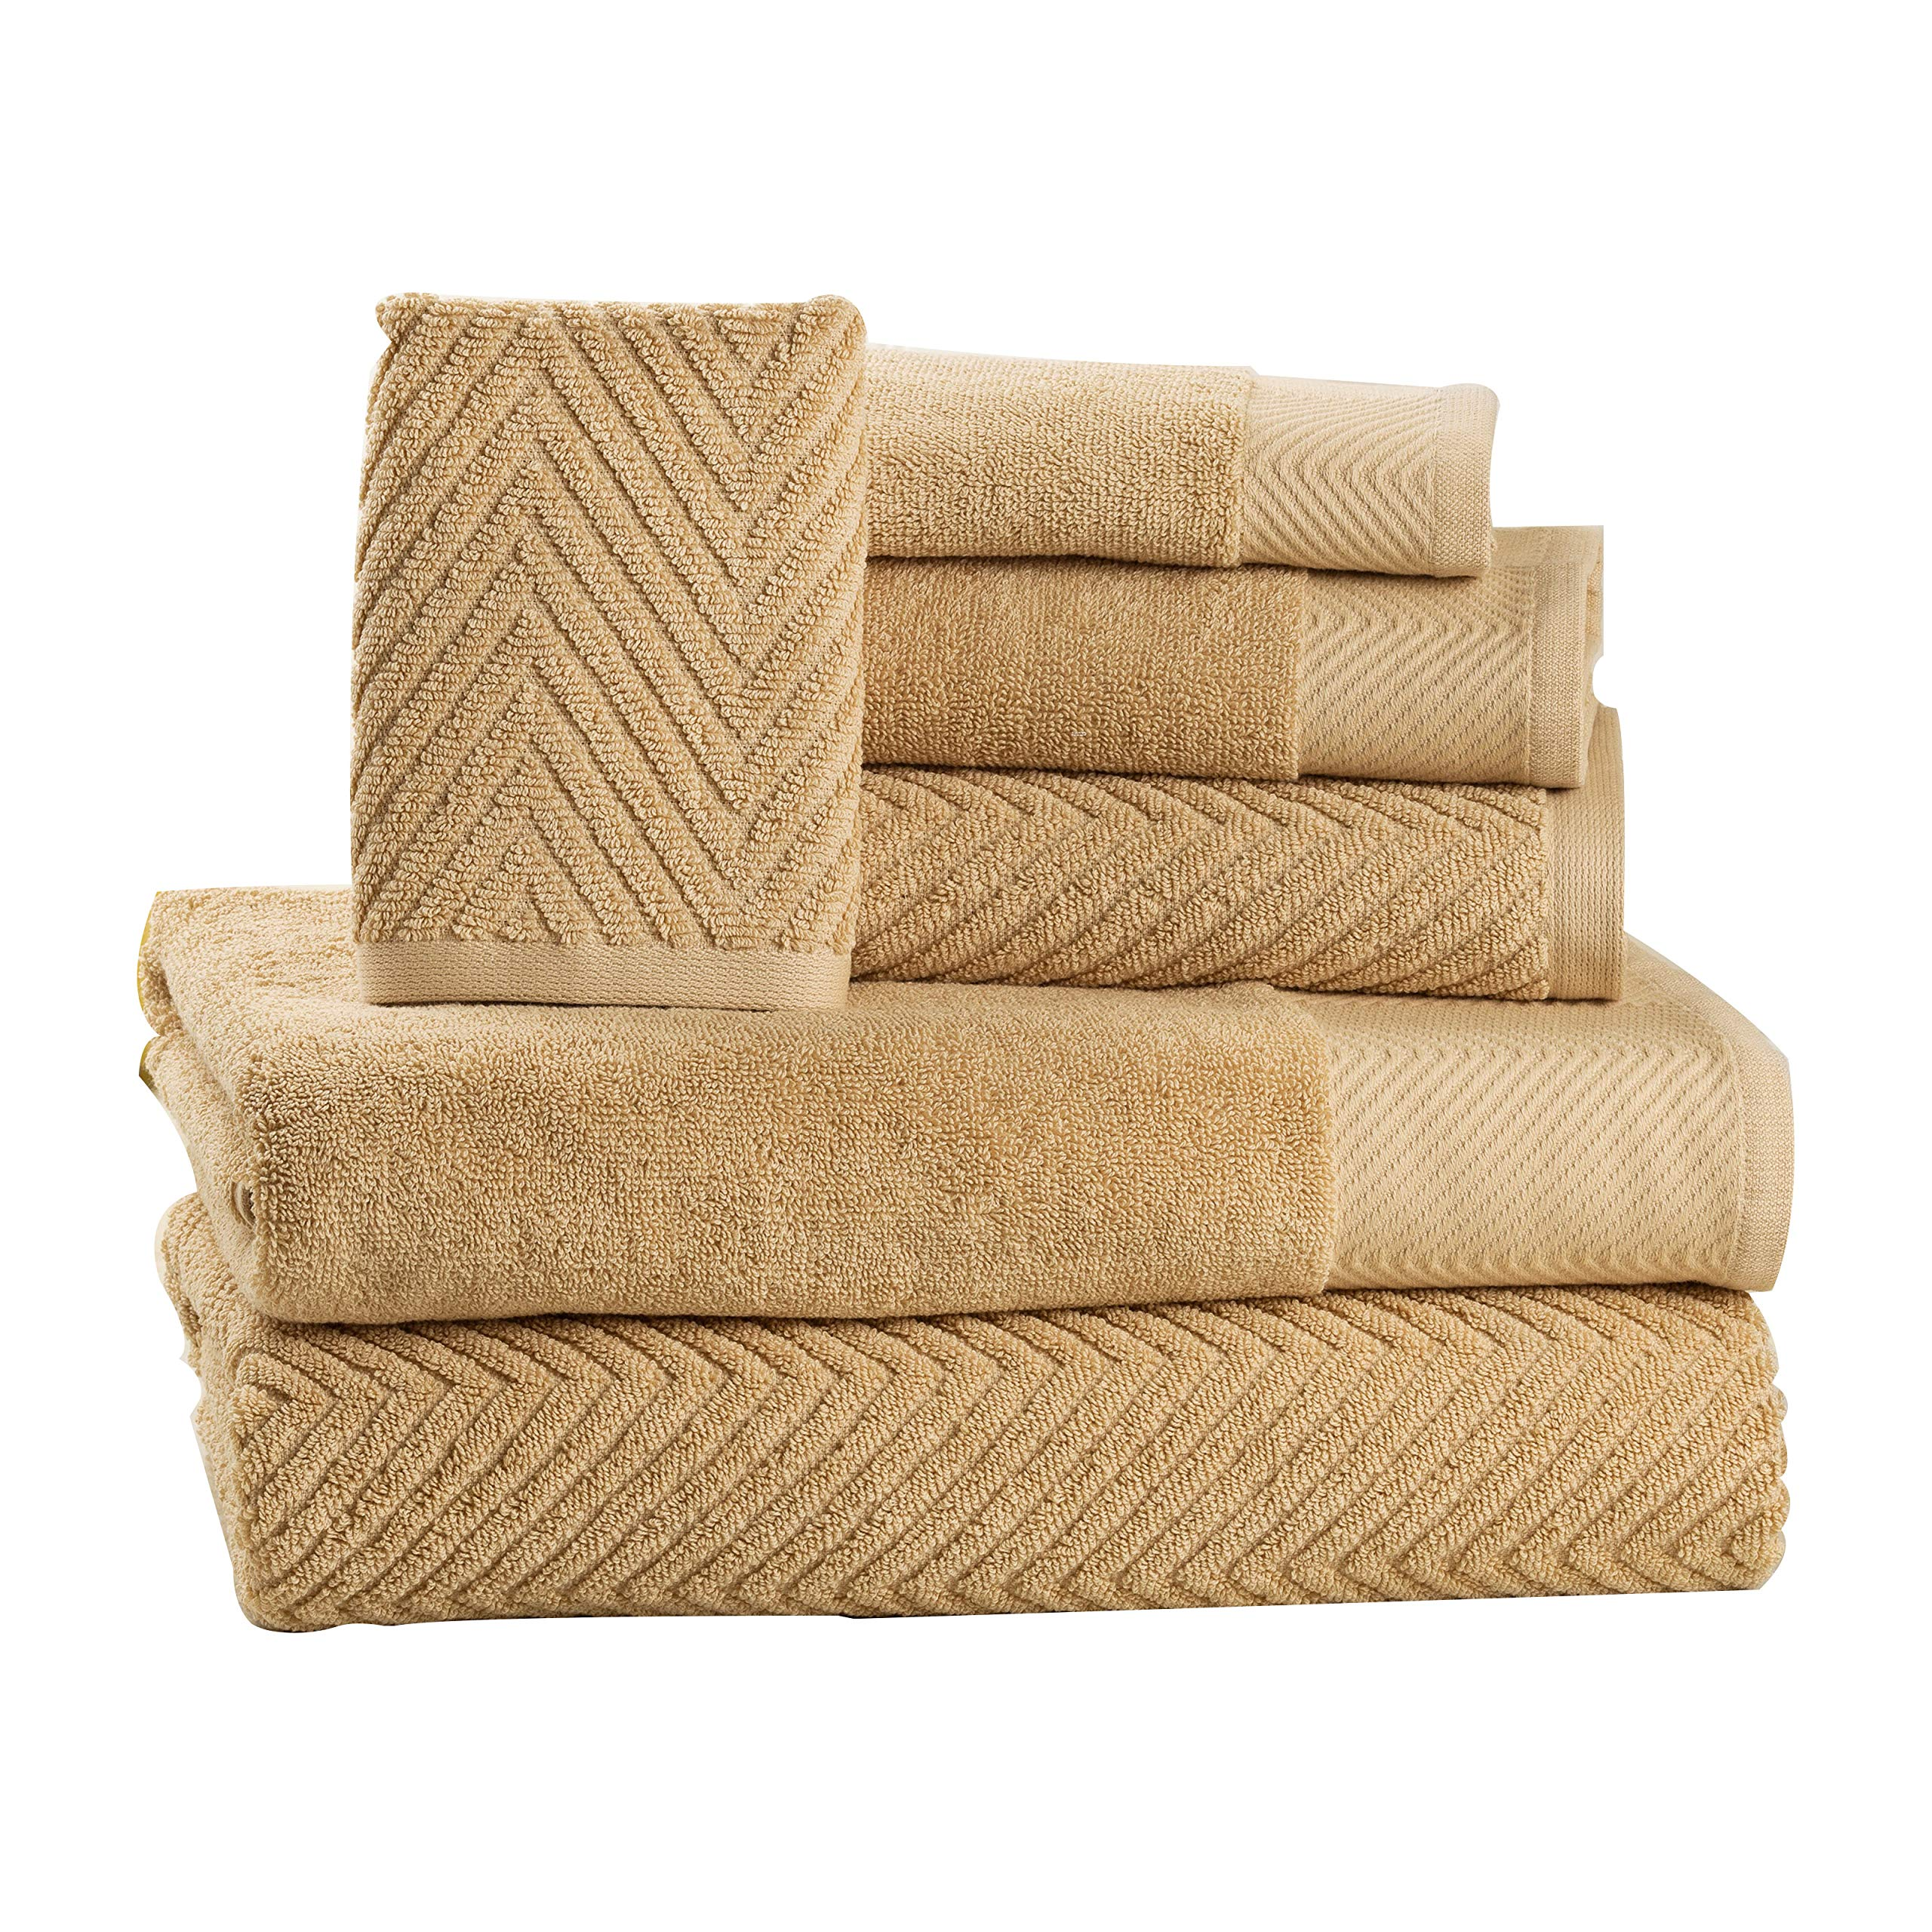 ISABELLA CROMWELL 6 Piece Cotton Bath Towels Set - 2 Bath Towels, 2 Hand Towels, 2 Washcloths Machine Washable Super Absorbent Hotel Spa Quality Luxury Towel Gift Sets Chevron Towel Set - Beige